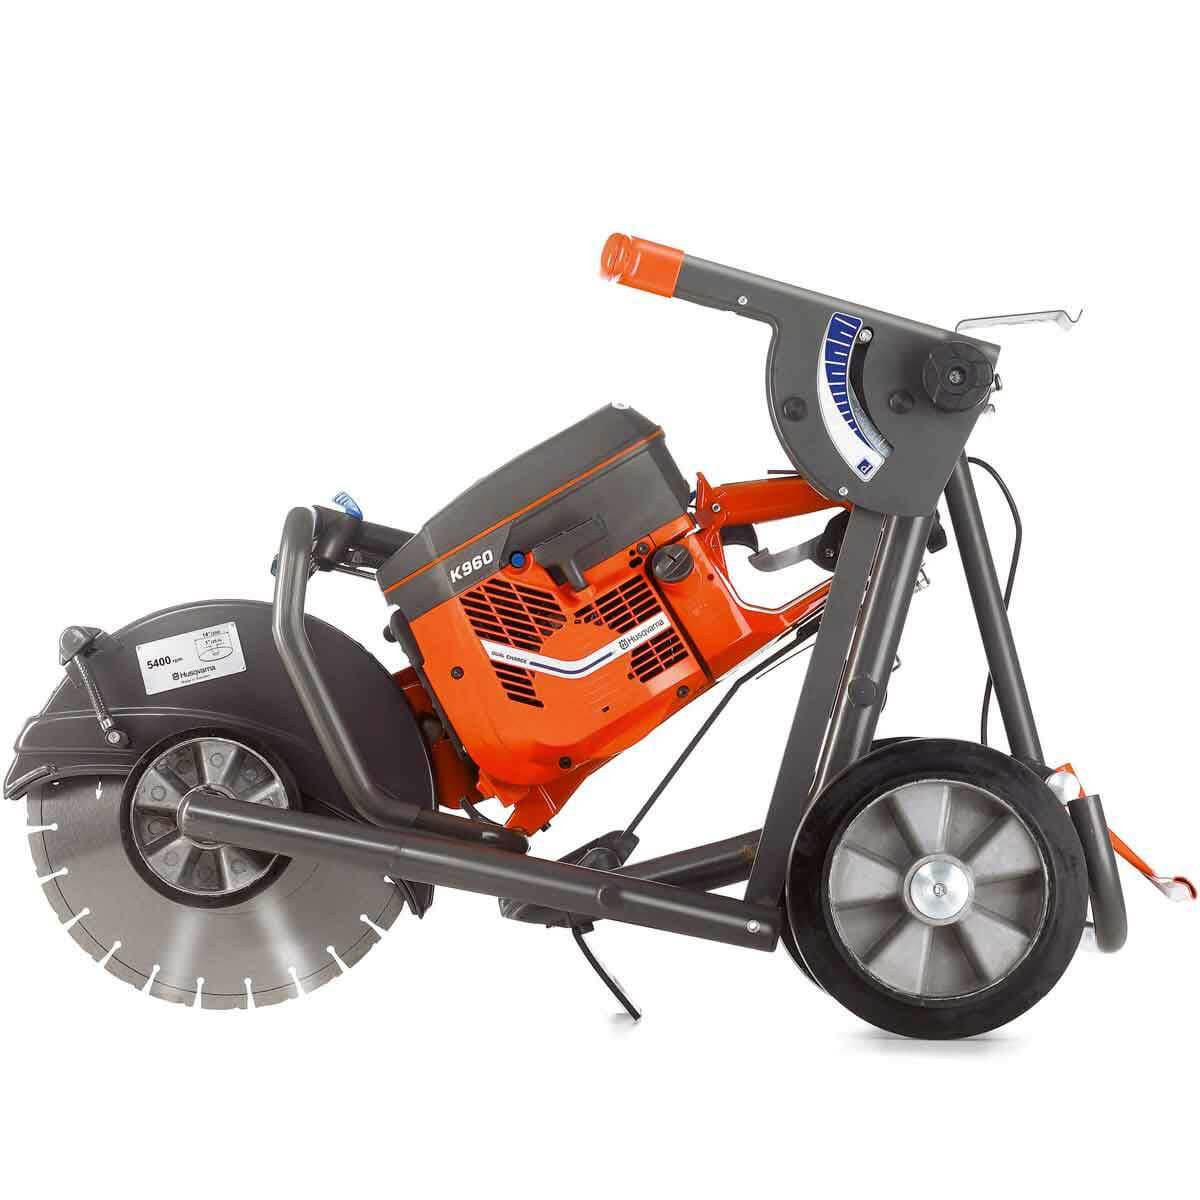 Husqvarna saw Cutting kart folded